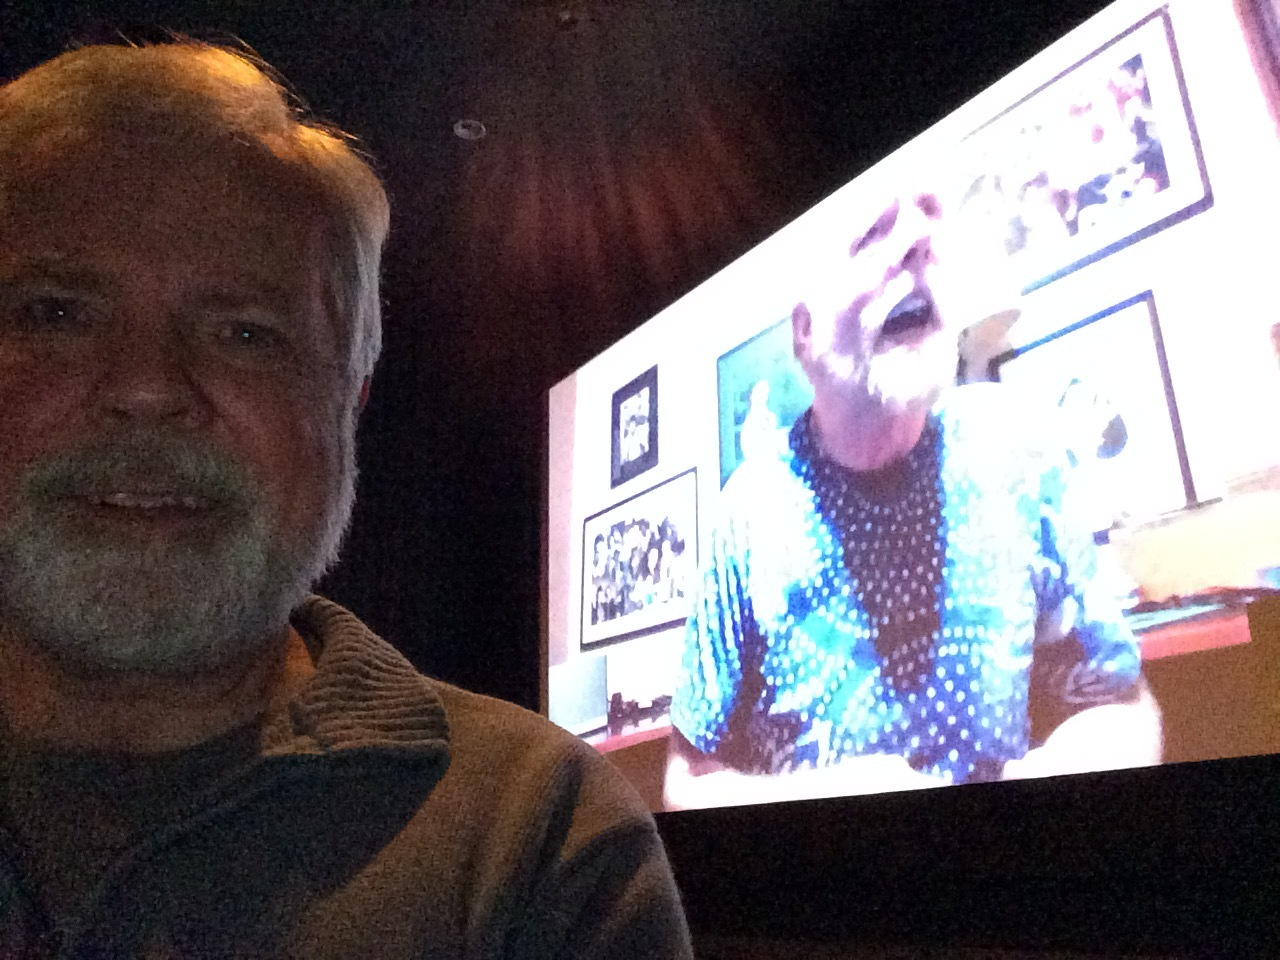 Richard Turner on the movie screen during the Q&A